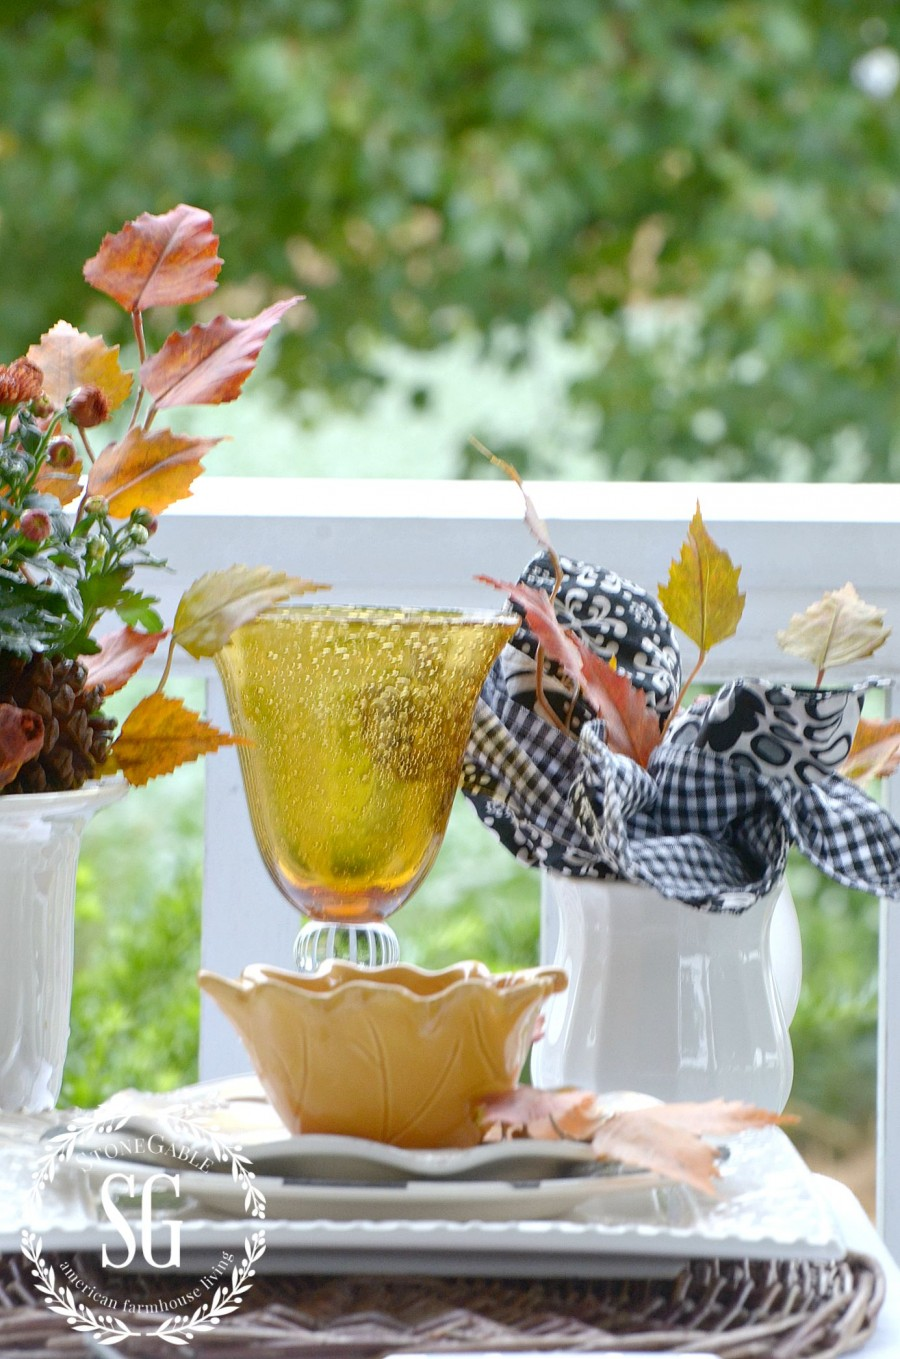 FALL TABLESCAPE ON THE BACK PORCH-Setting an eary fall table with autumnal colors and elements-stonegableblog.com